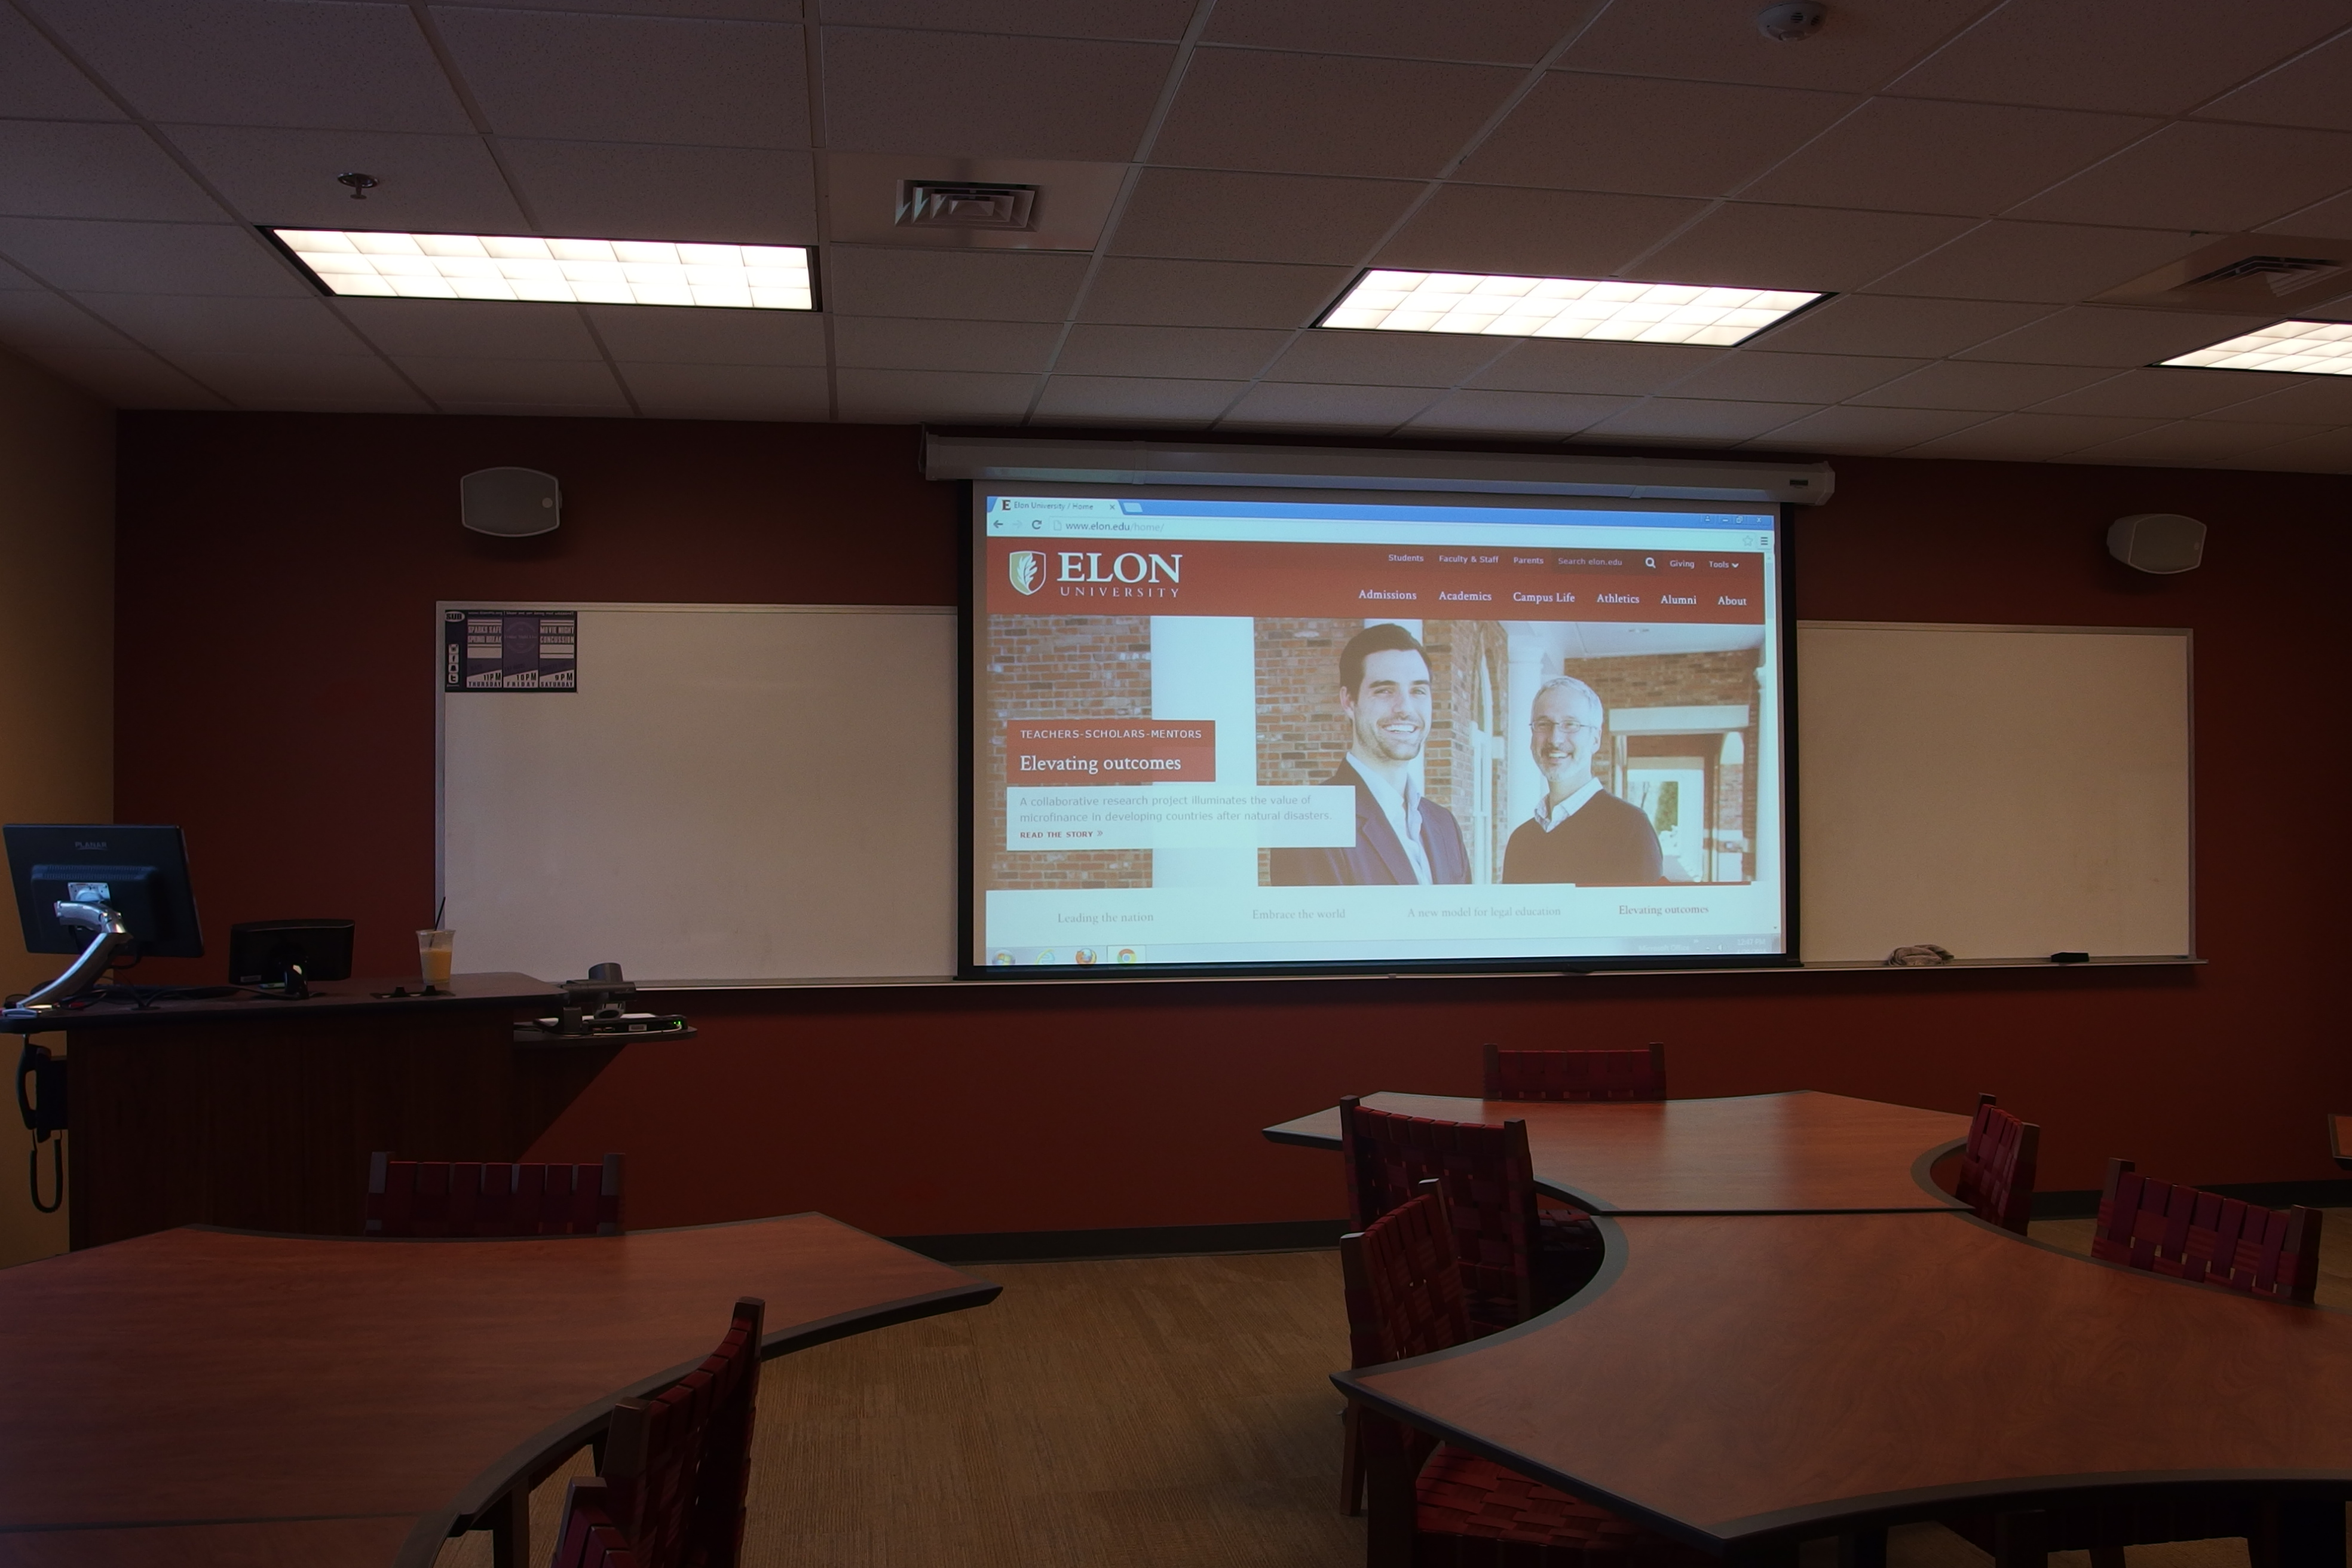 Photo of classroom 114 in global e that shows lowered projector, student tables, and instructor station